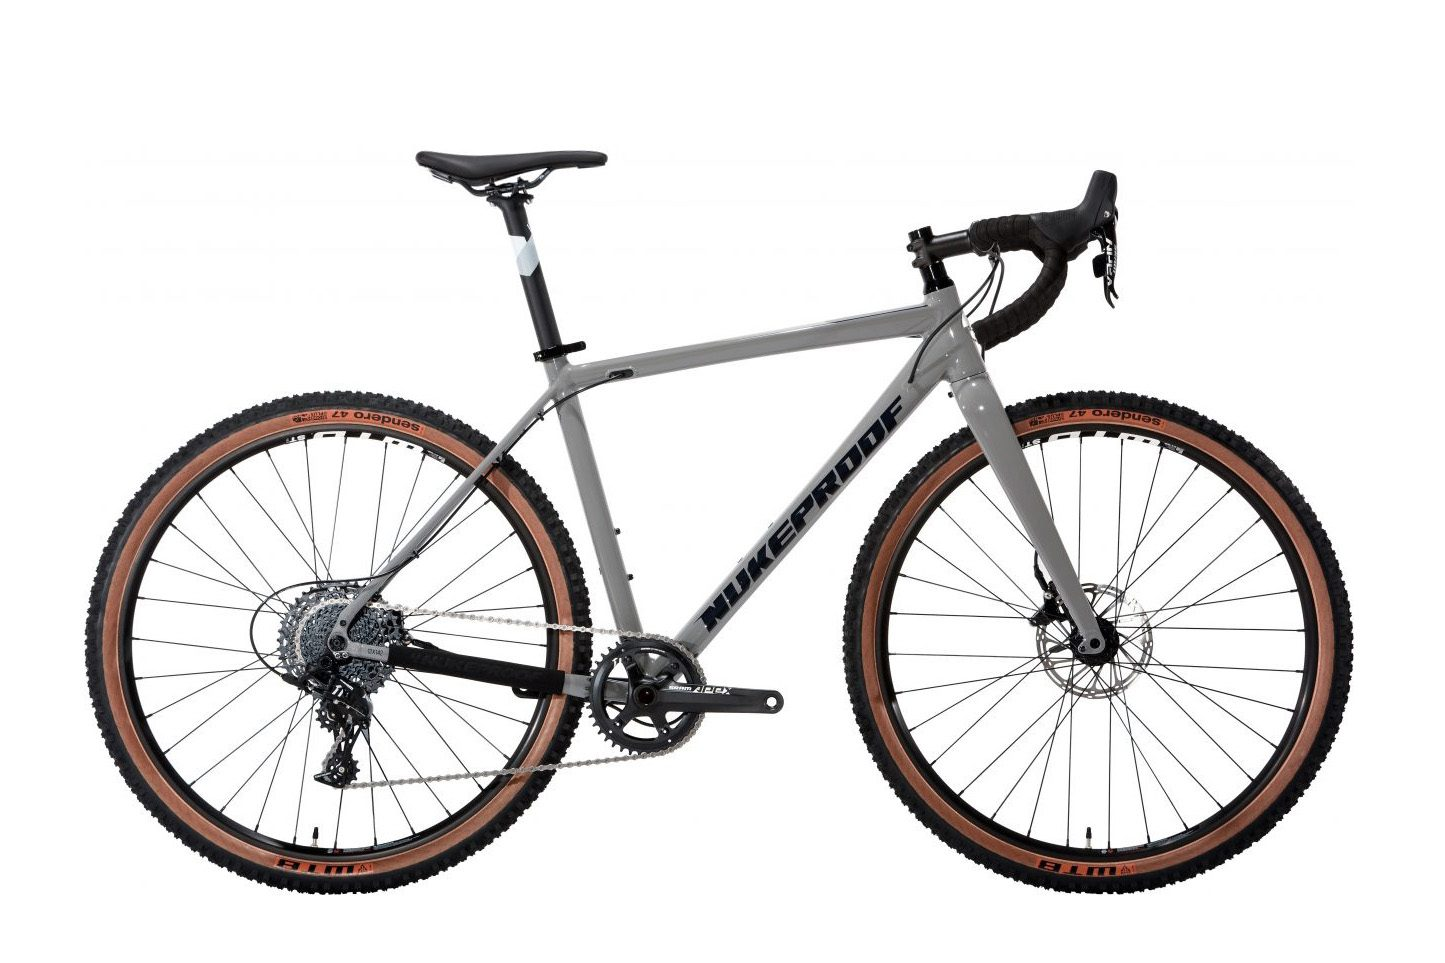 Nukeproof's New Scout and Digger